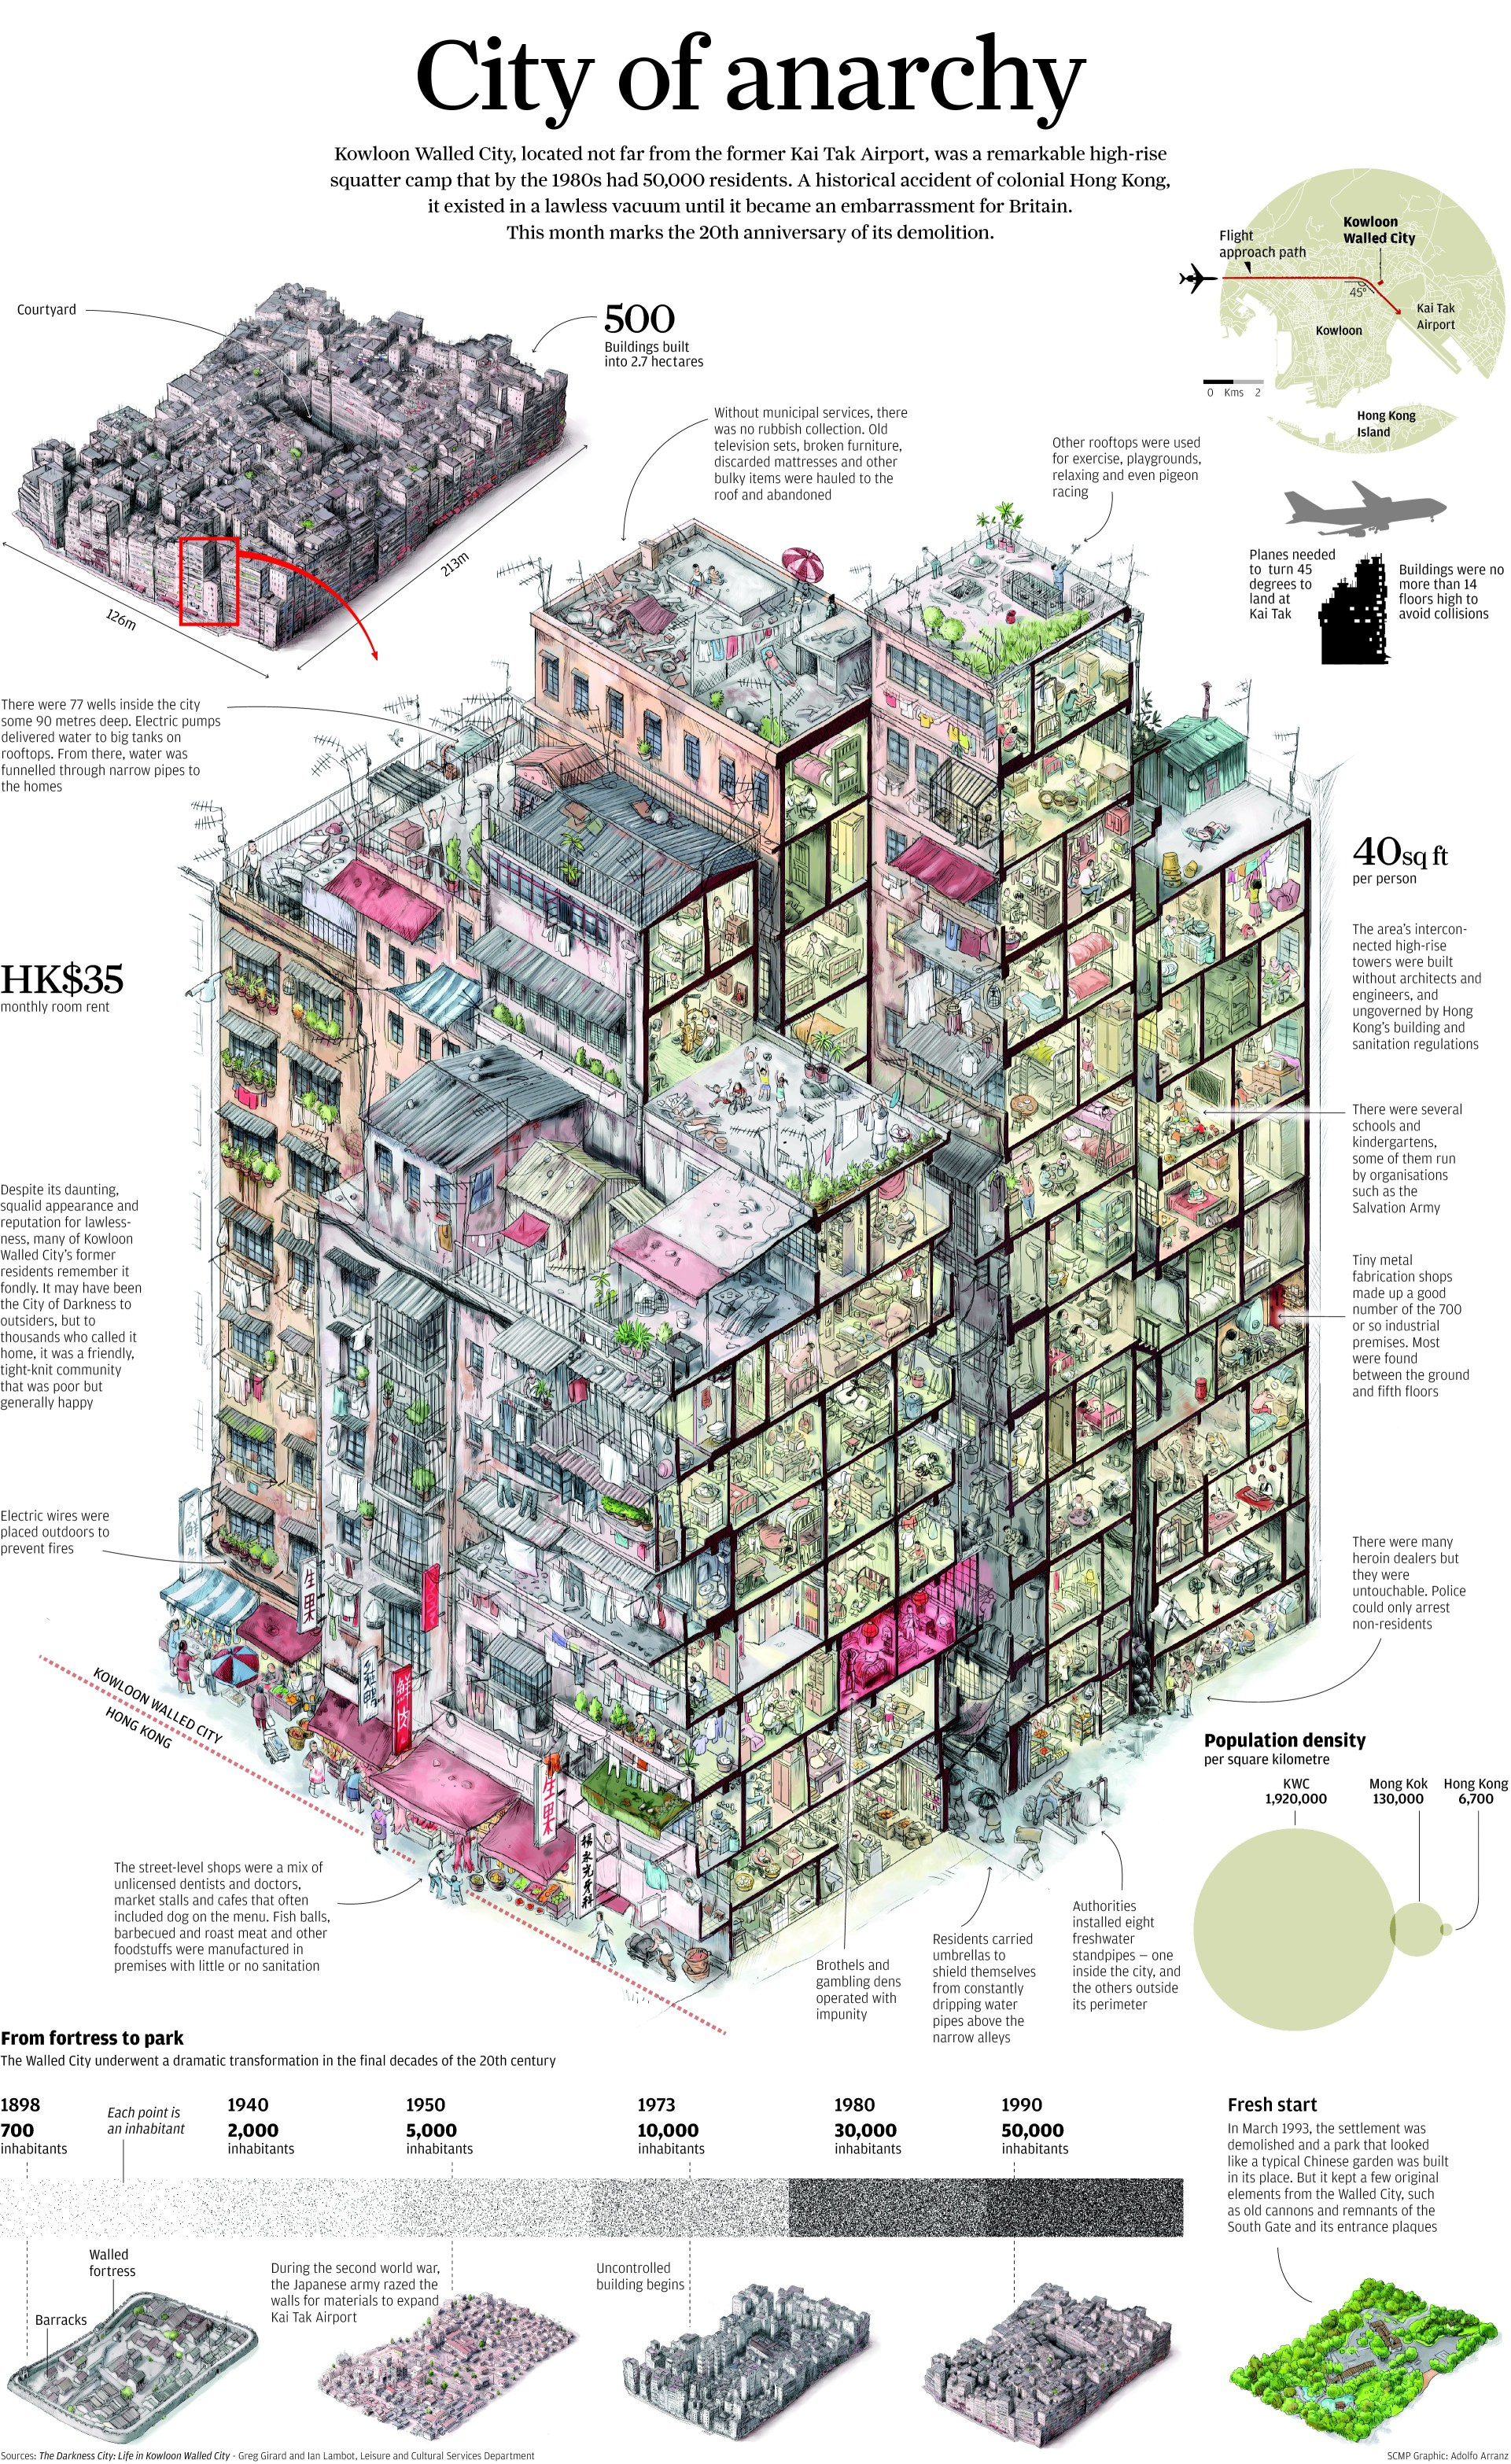 kowloon-walled-city-full.jpg